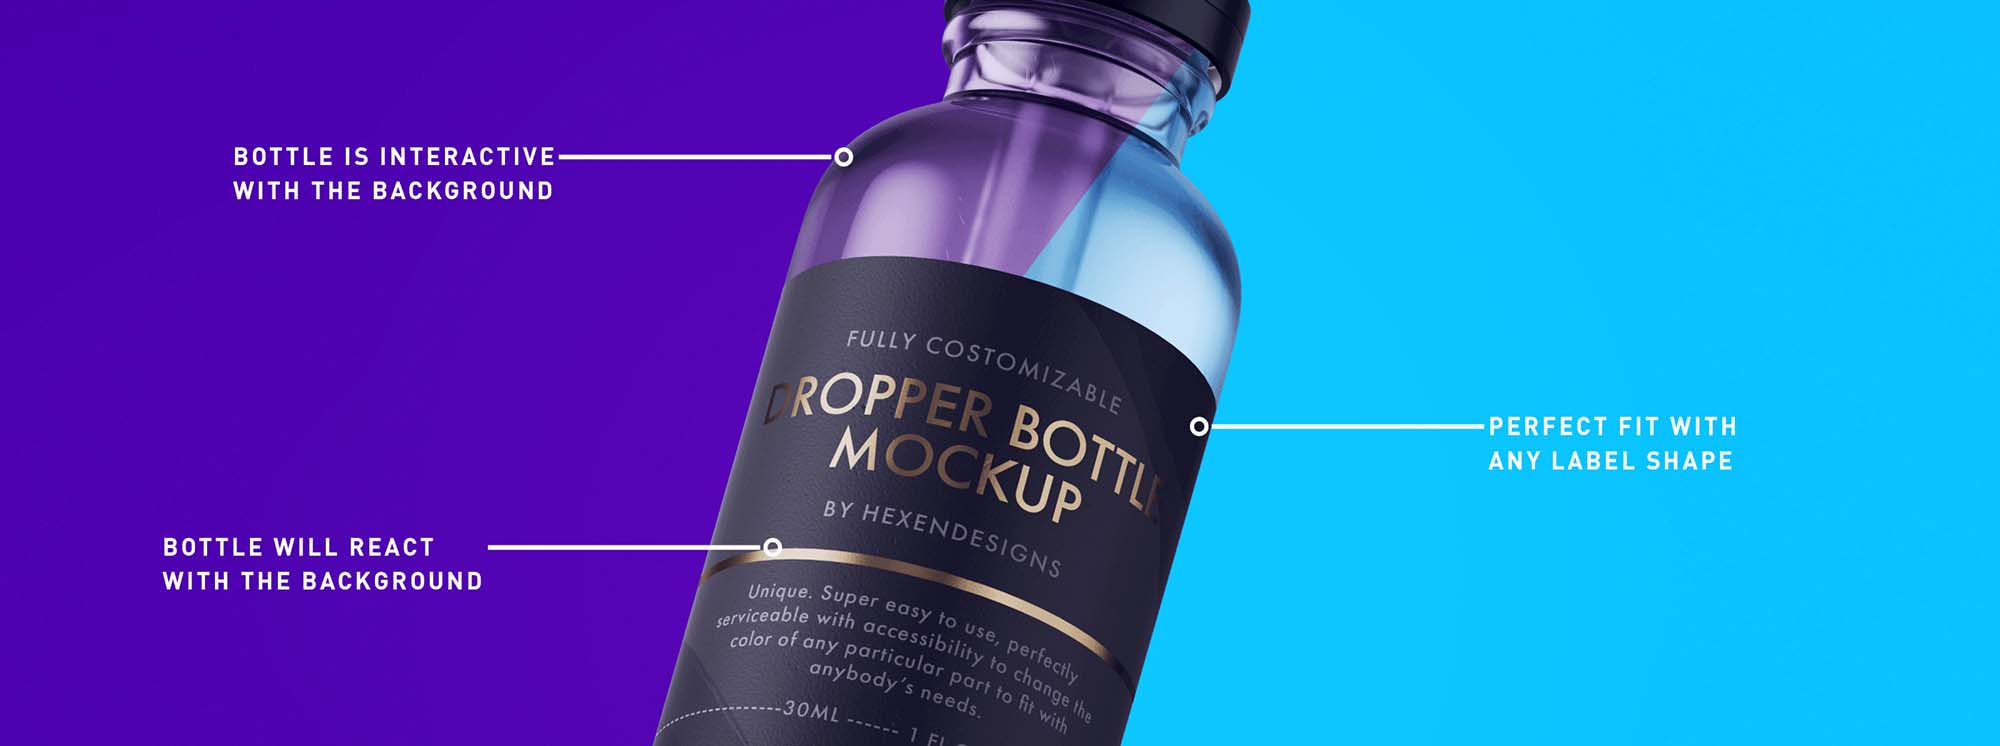 Dropper Bottle Mockup Features